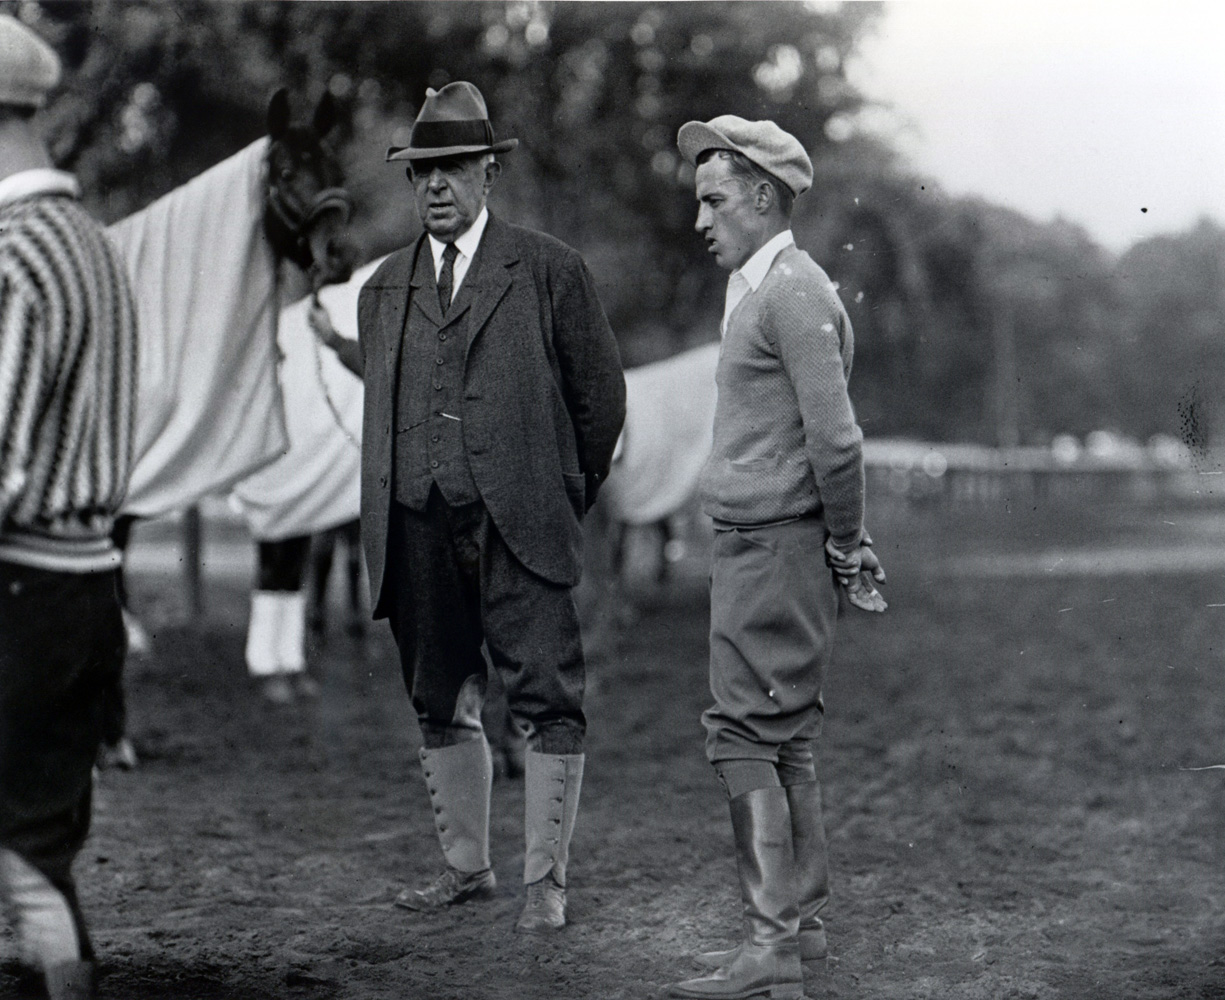 Trainer Andrew Jack Joyner and jockey J. Linus McAtee in the paddock (Keeneland Library Cook Collection)